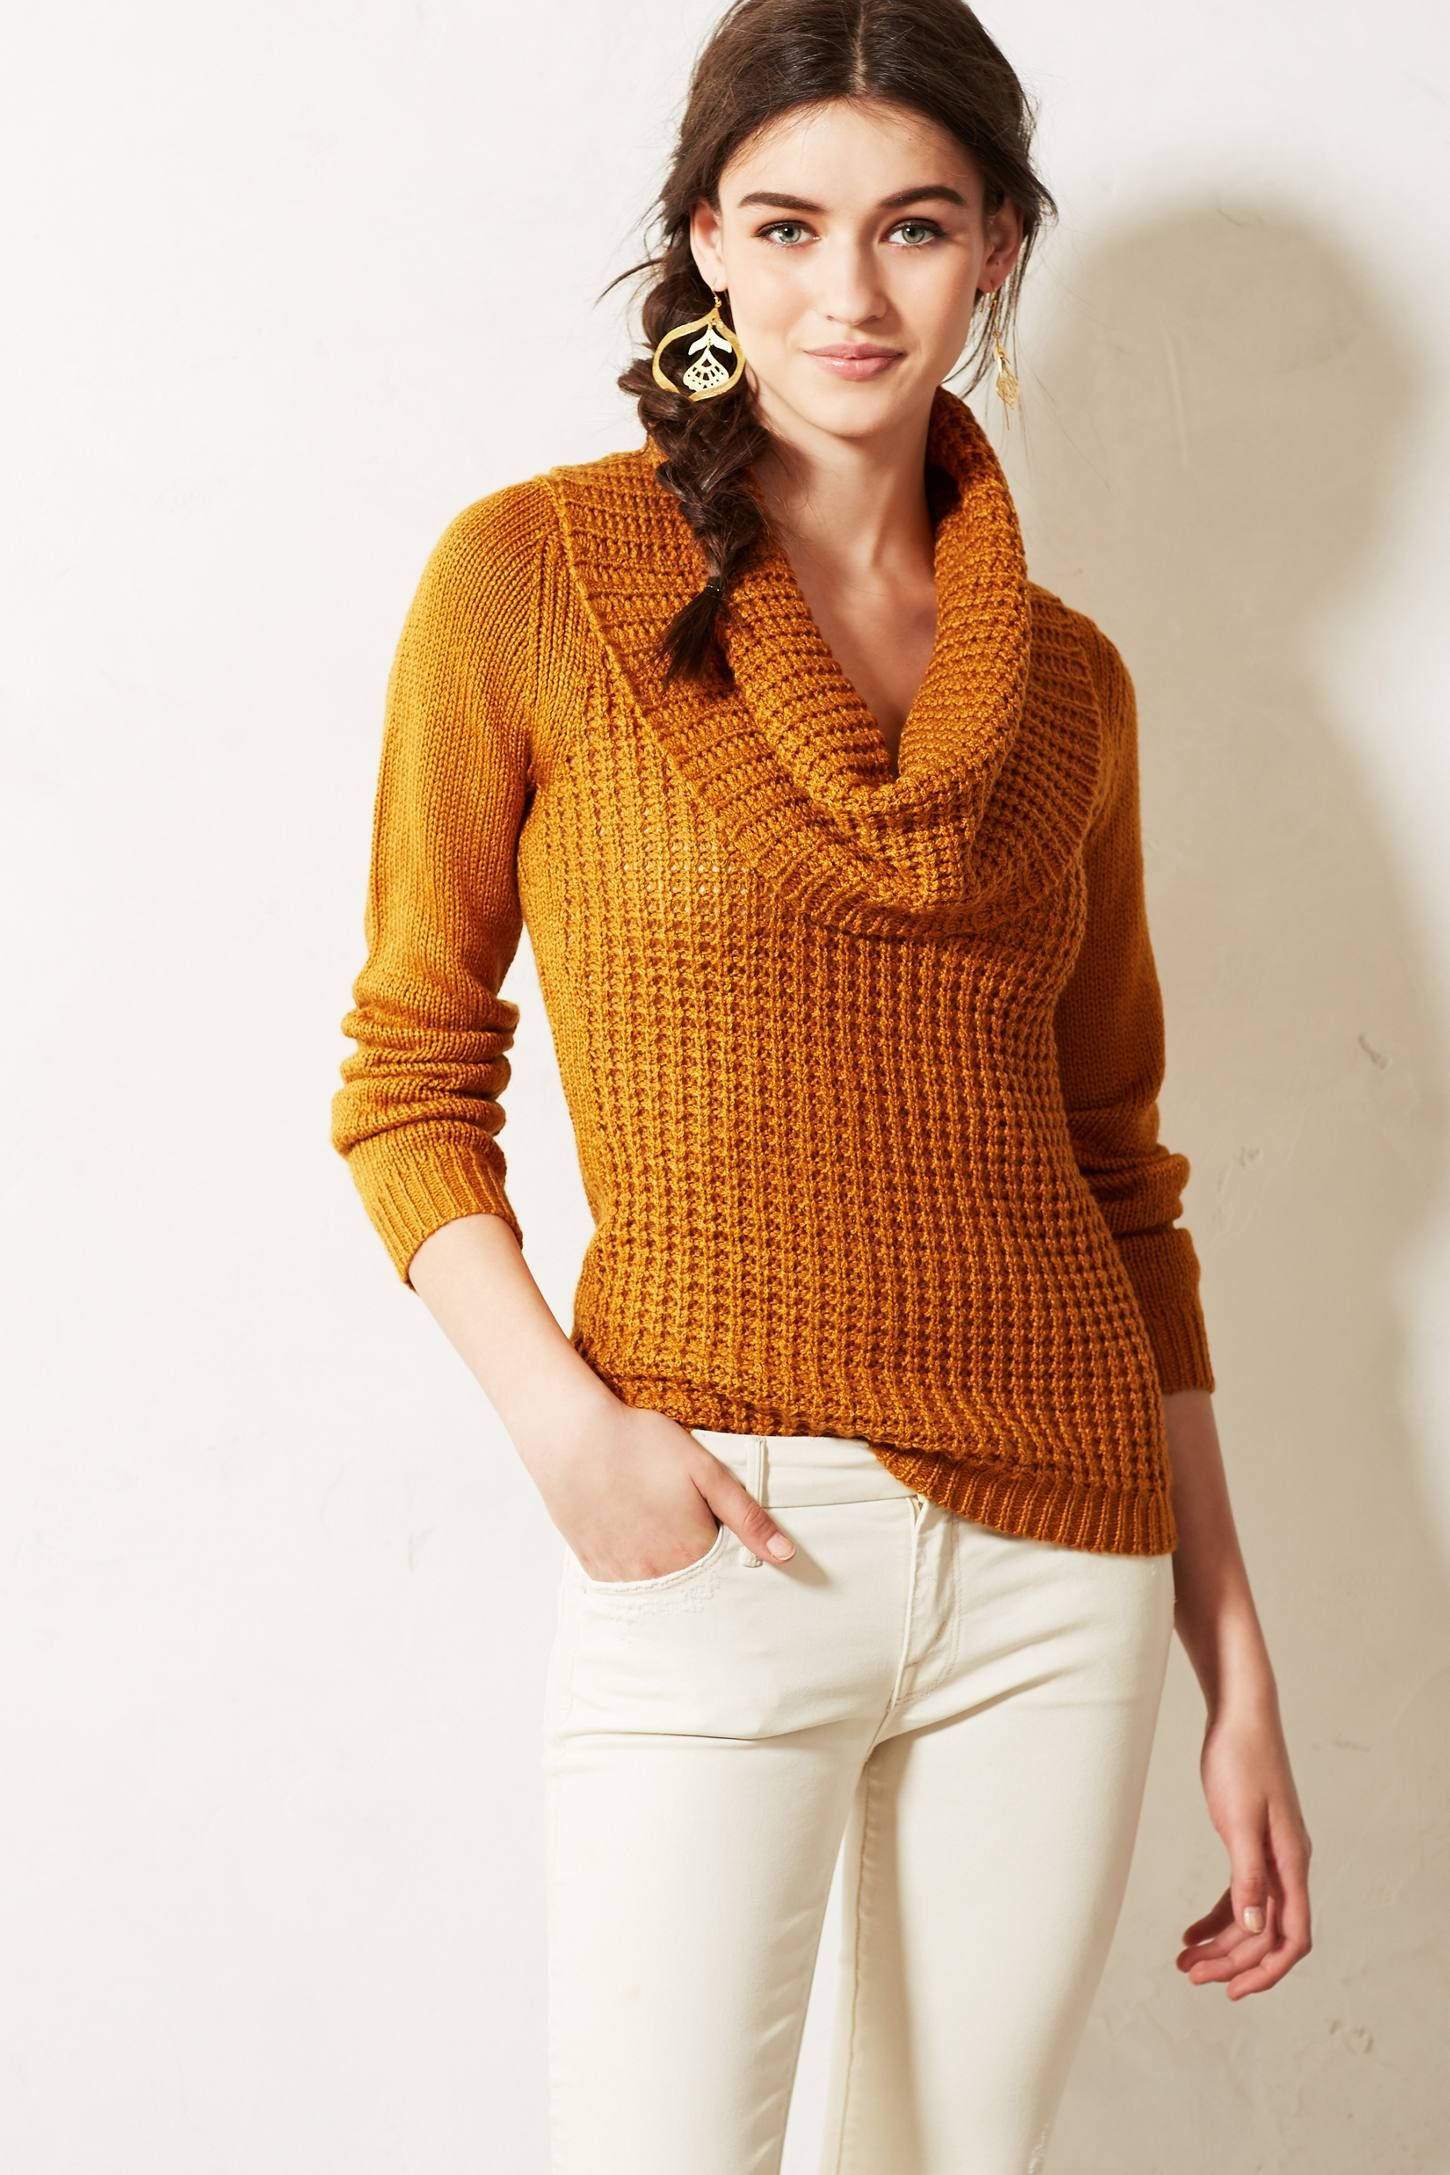 Waffled Cowlneck - anthropologie.com $98.00   my style   Pinterest ...